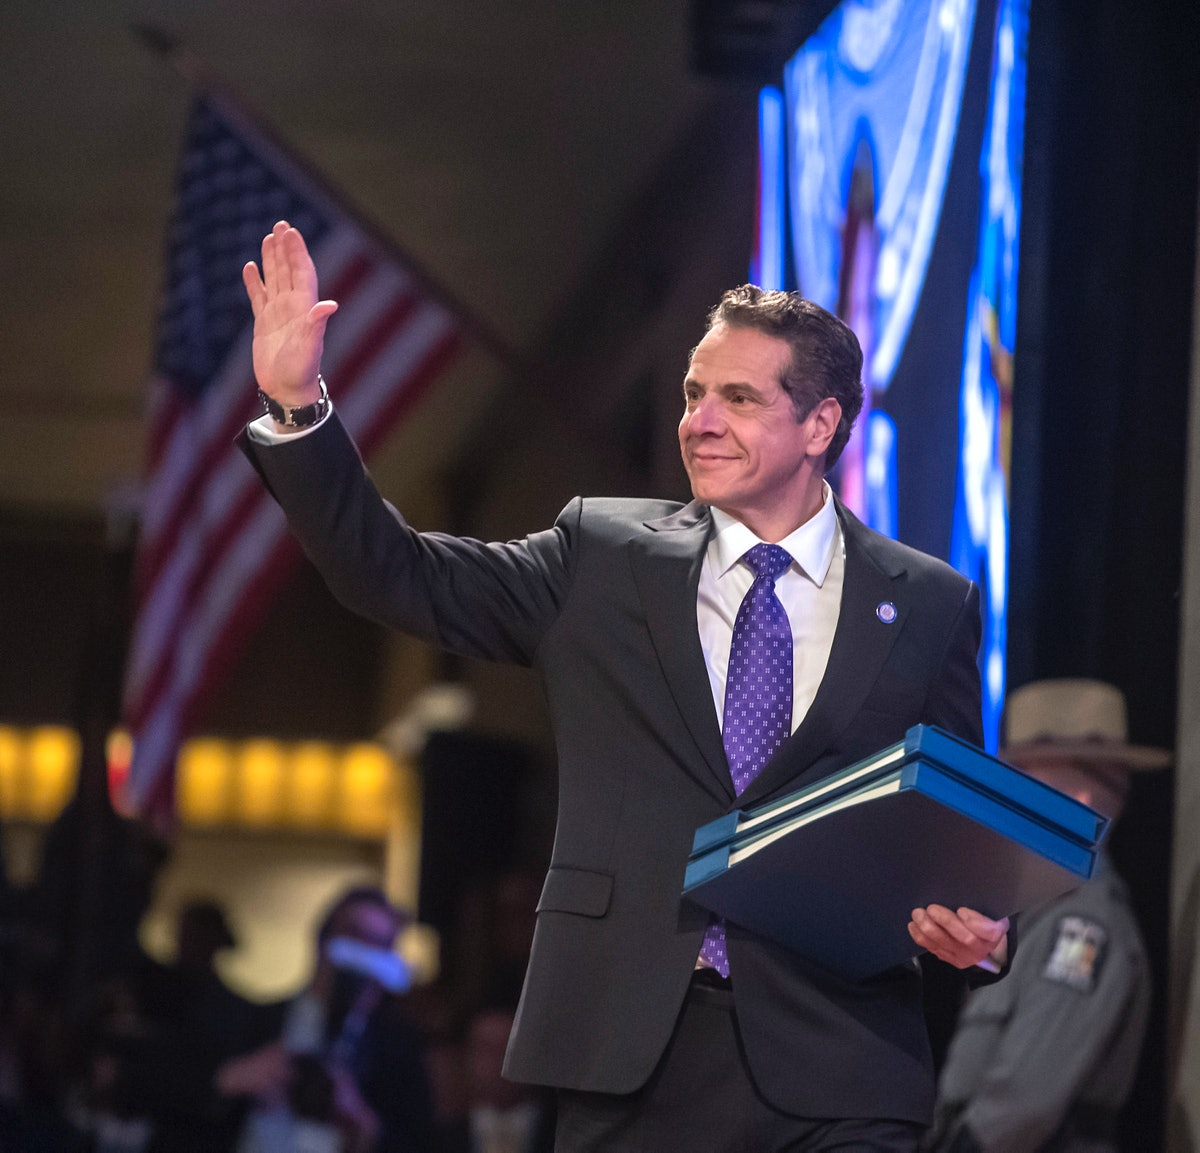 Albany, N.Y.: New York State Governor Andrew Cuomo waves before being introduced by Lieu. Gov Kathy ...